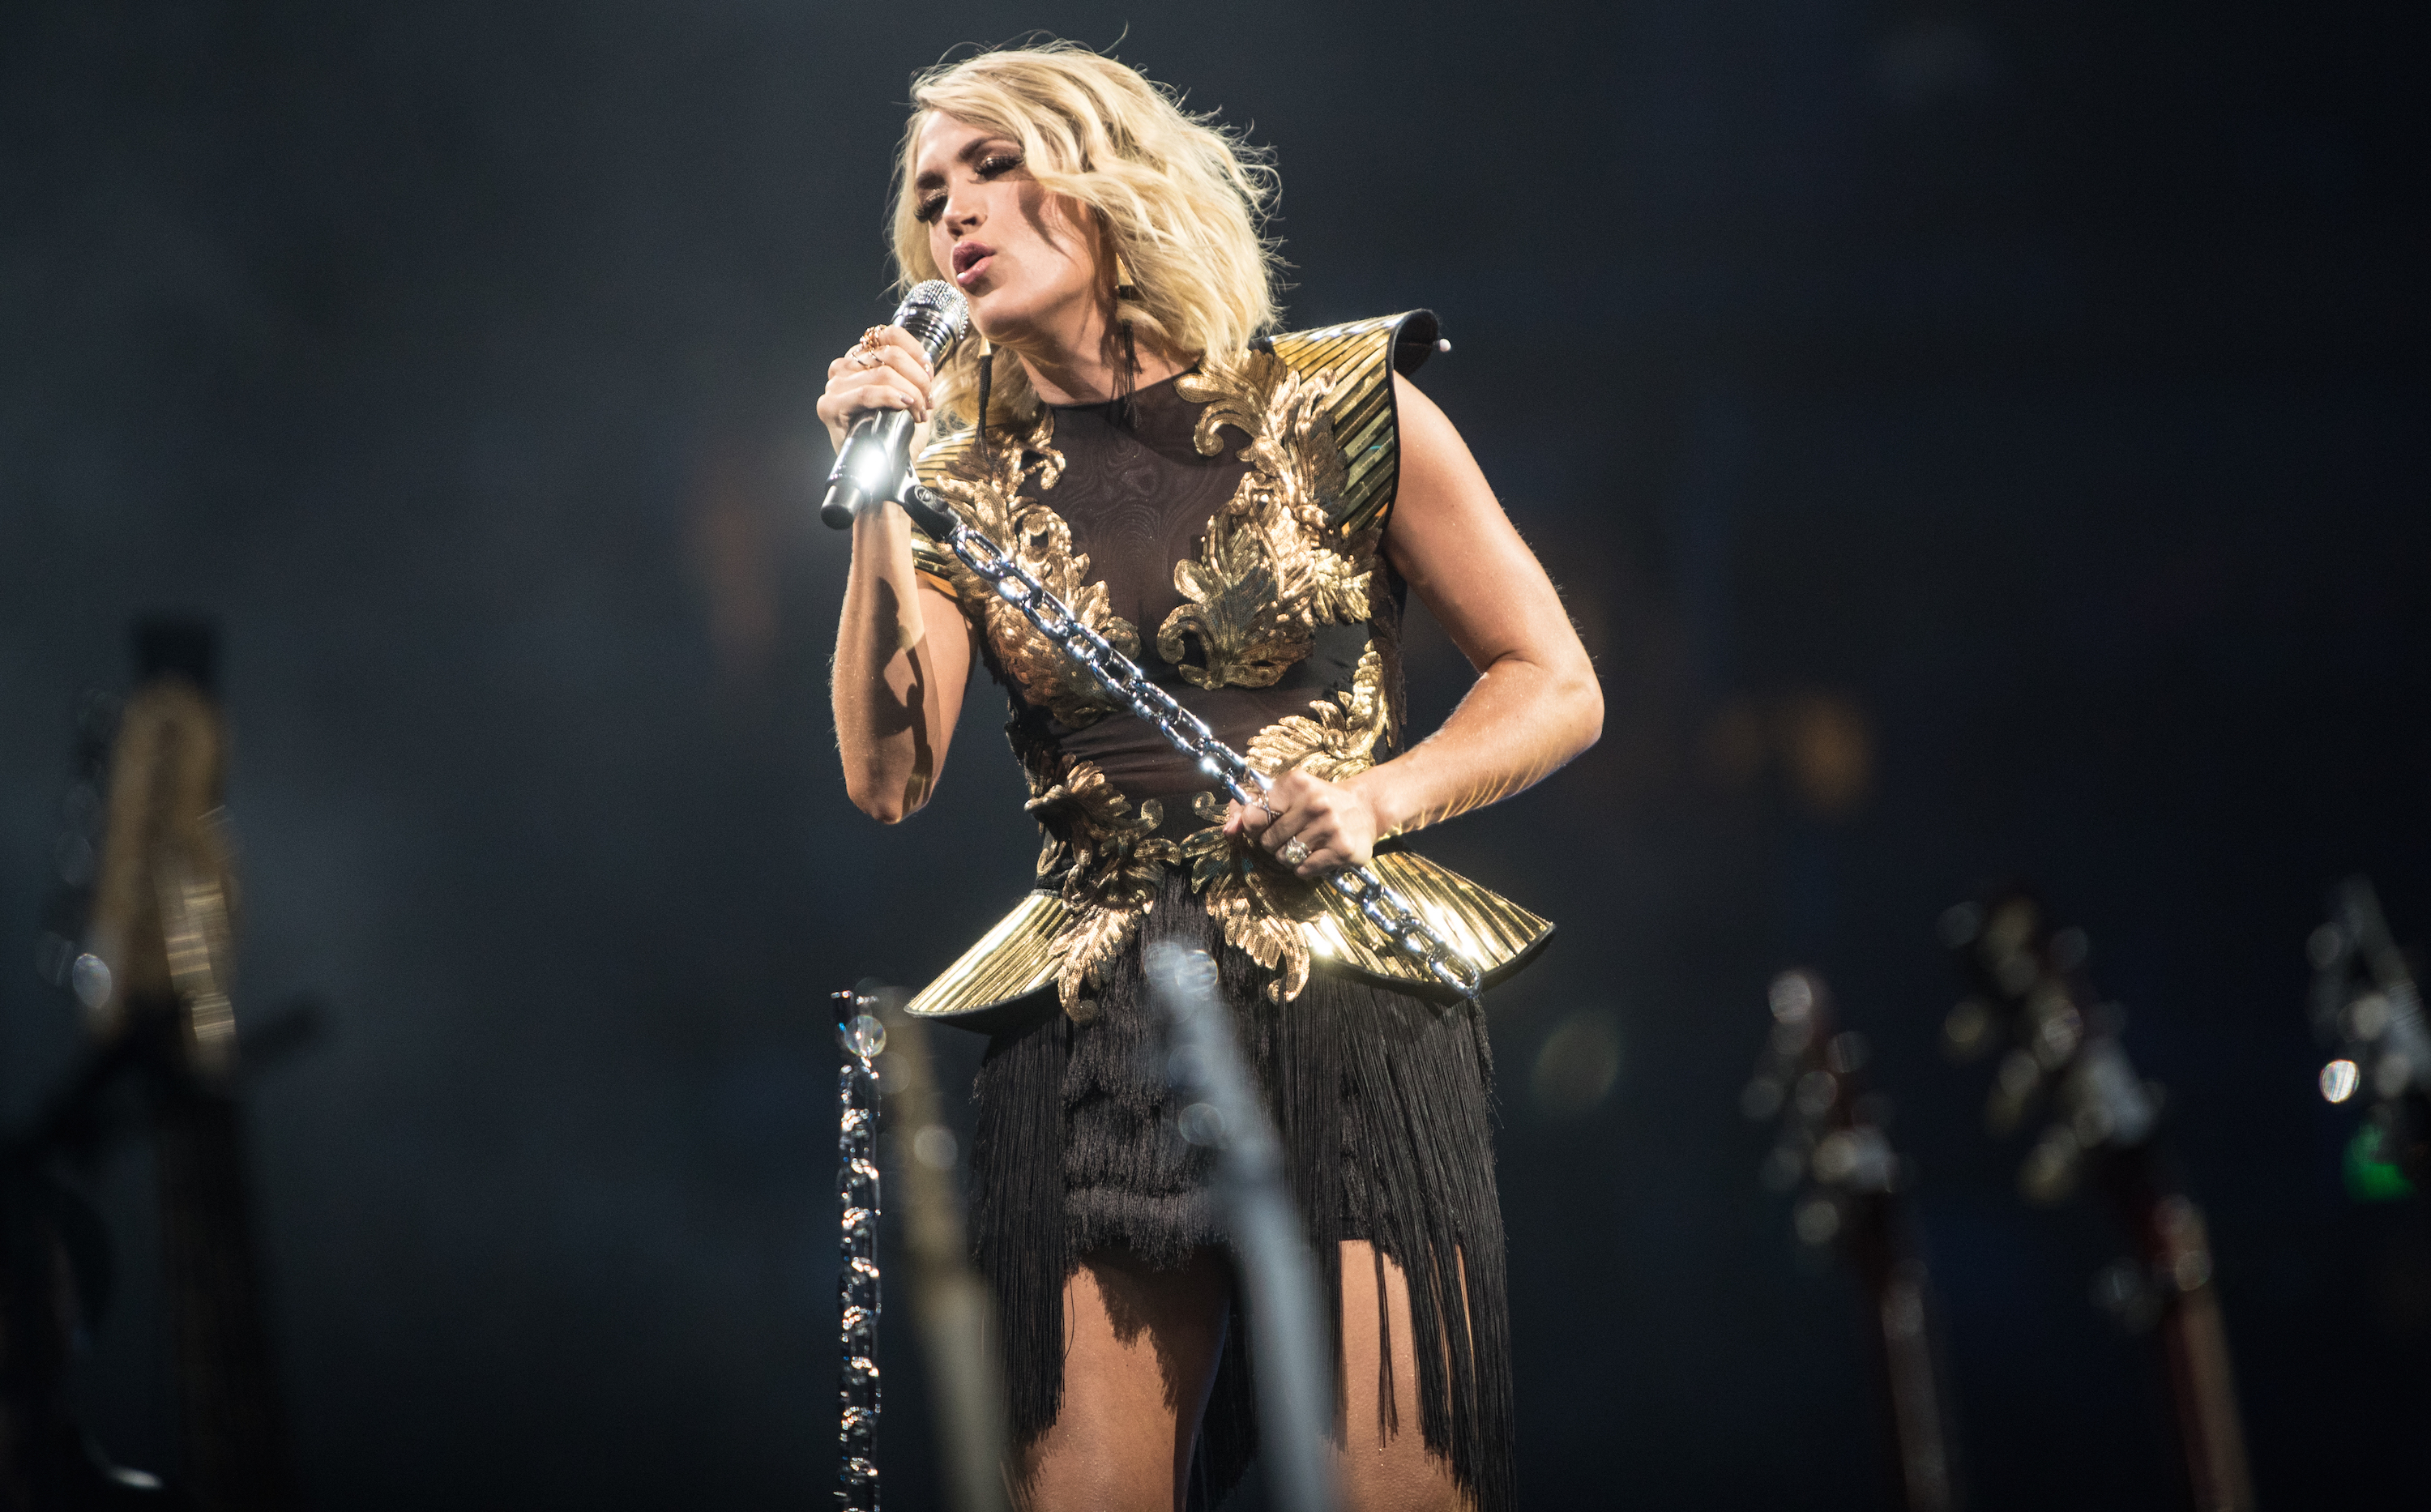 Carrie Underwood Doesn't Hold Anything Back on Emotional 'Cry Pretty'